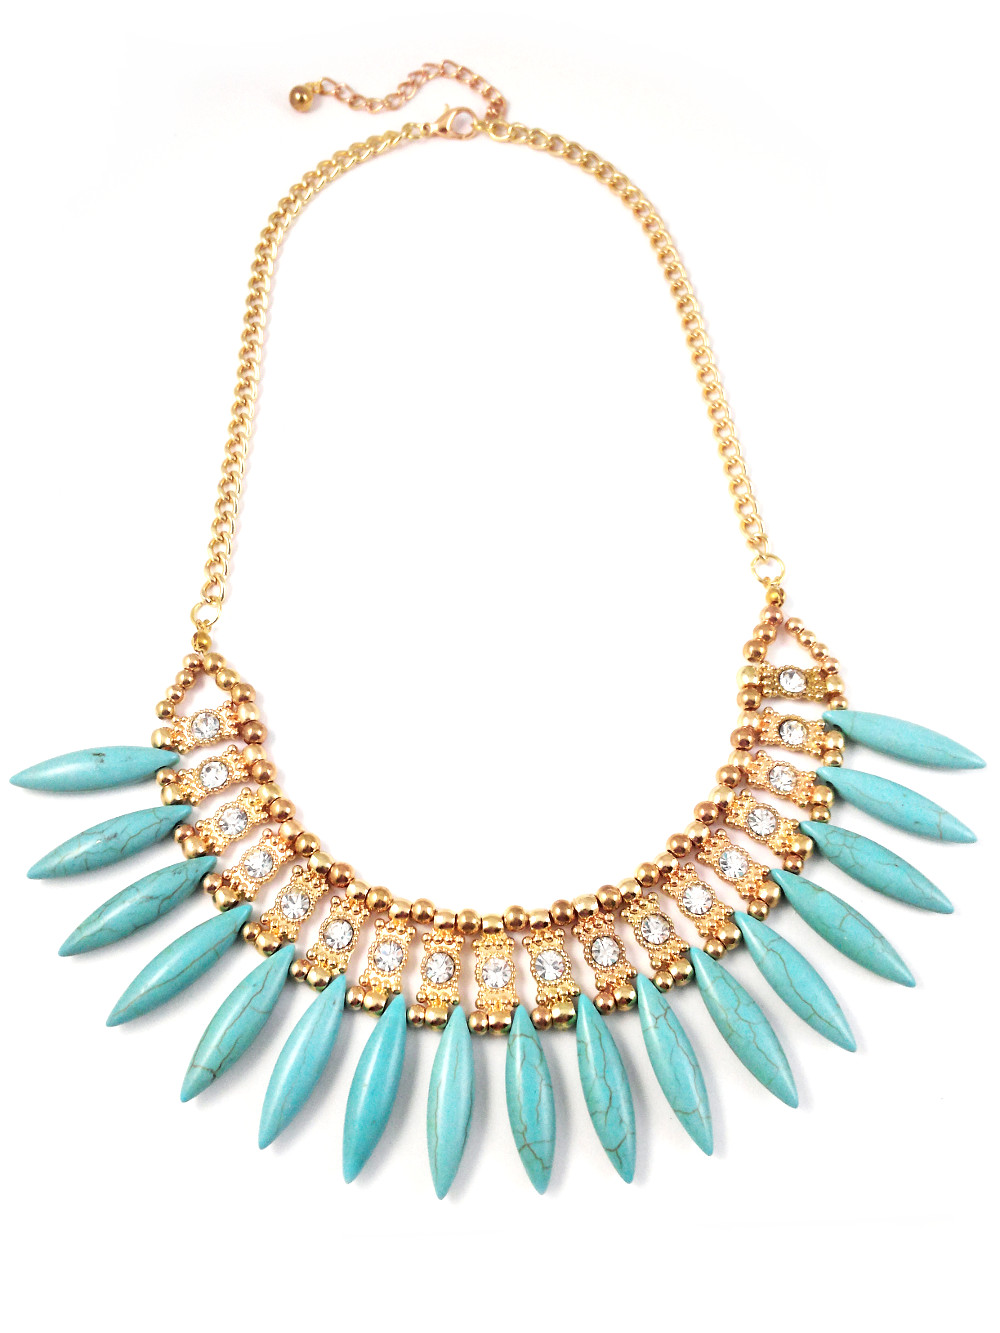 Home ⁄ Necklaces ⁄ Turquoise Spike Fringe Stone Statement Necklace